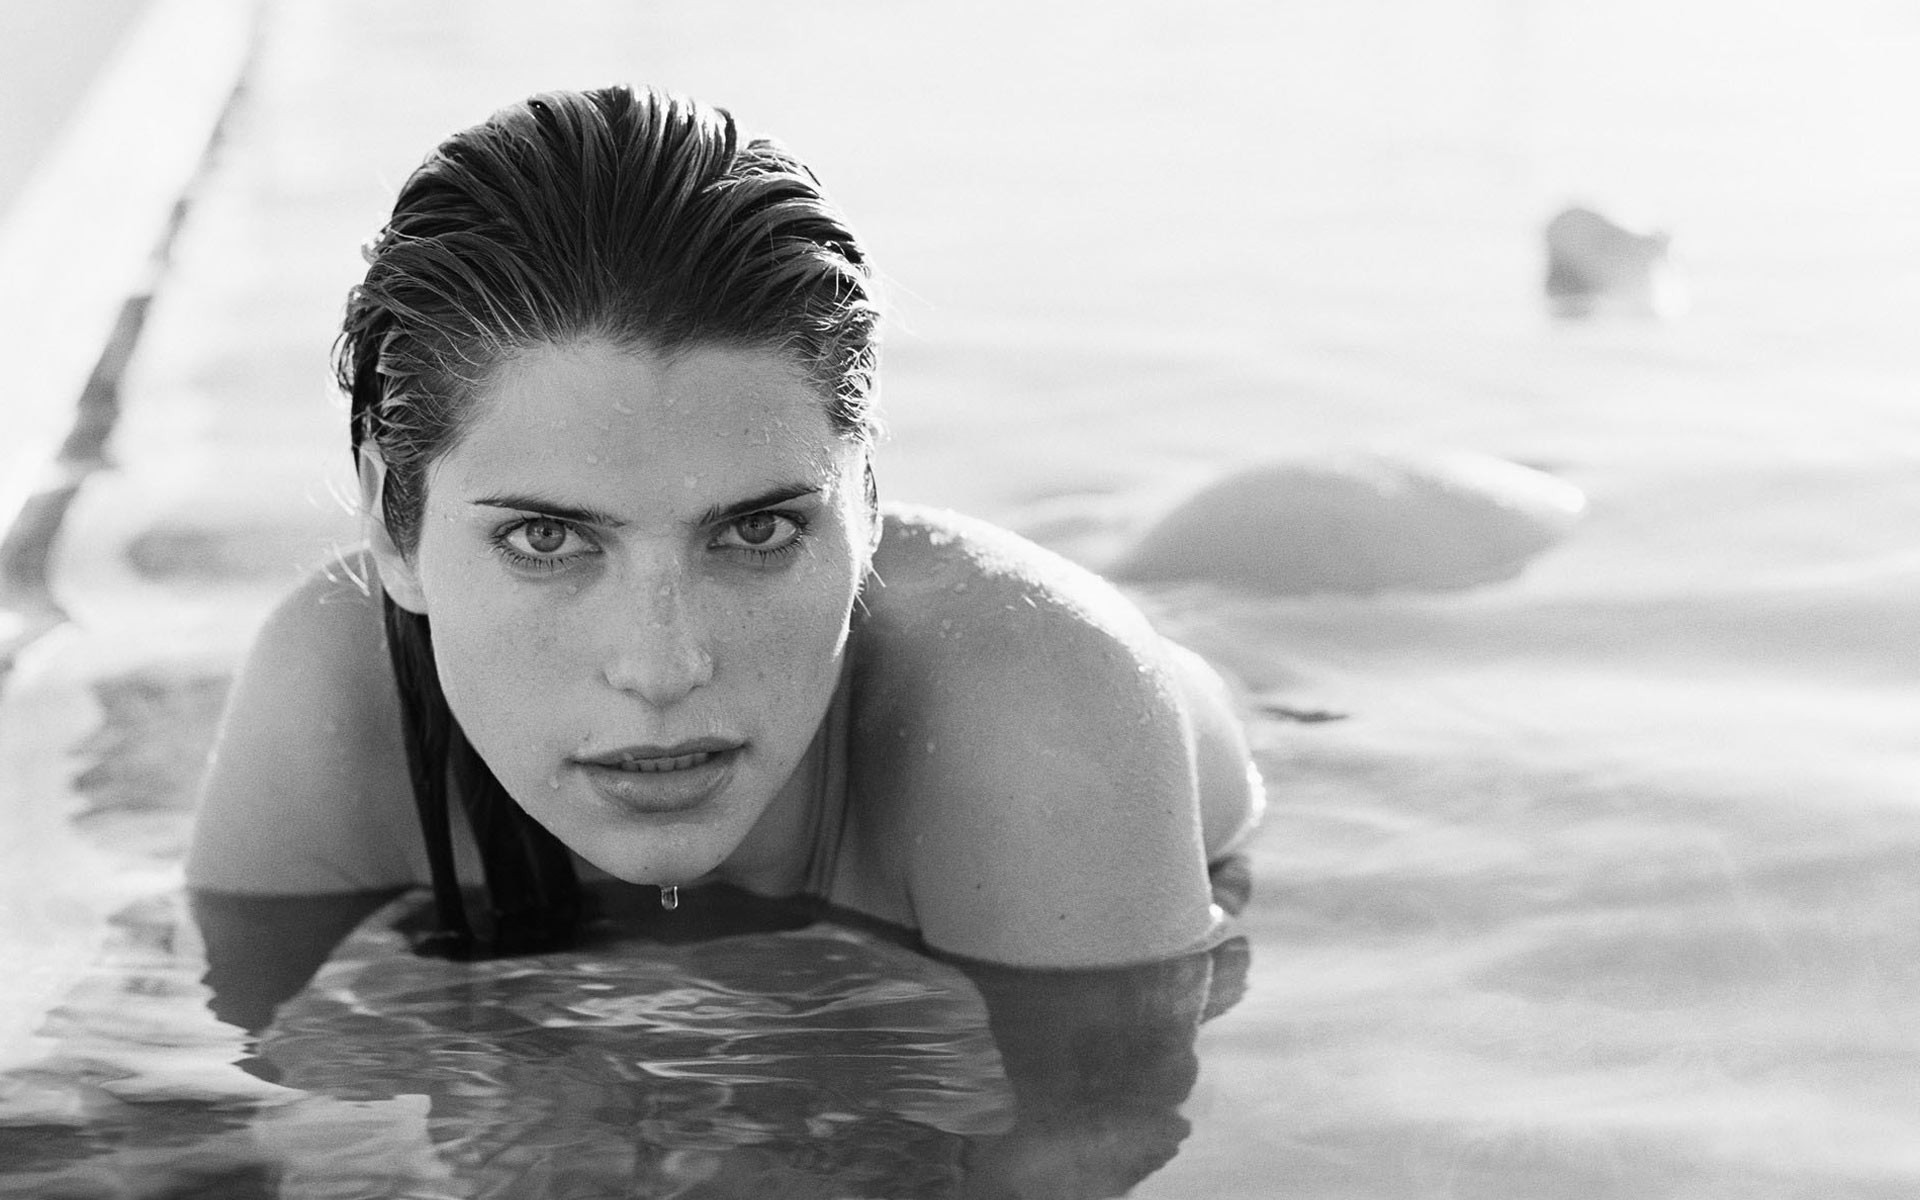 Free Moving Wallpaper For Iphone Lake Bell Wallpapers High Quality Download Free